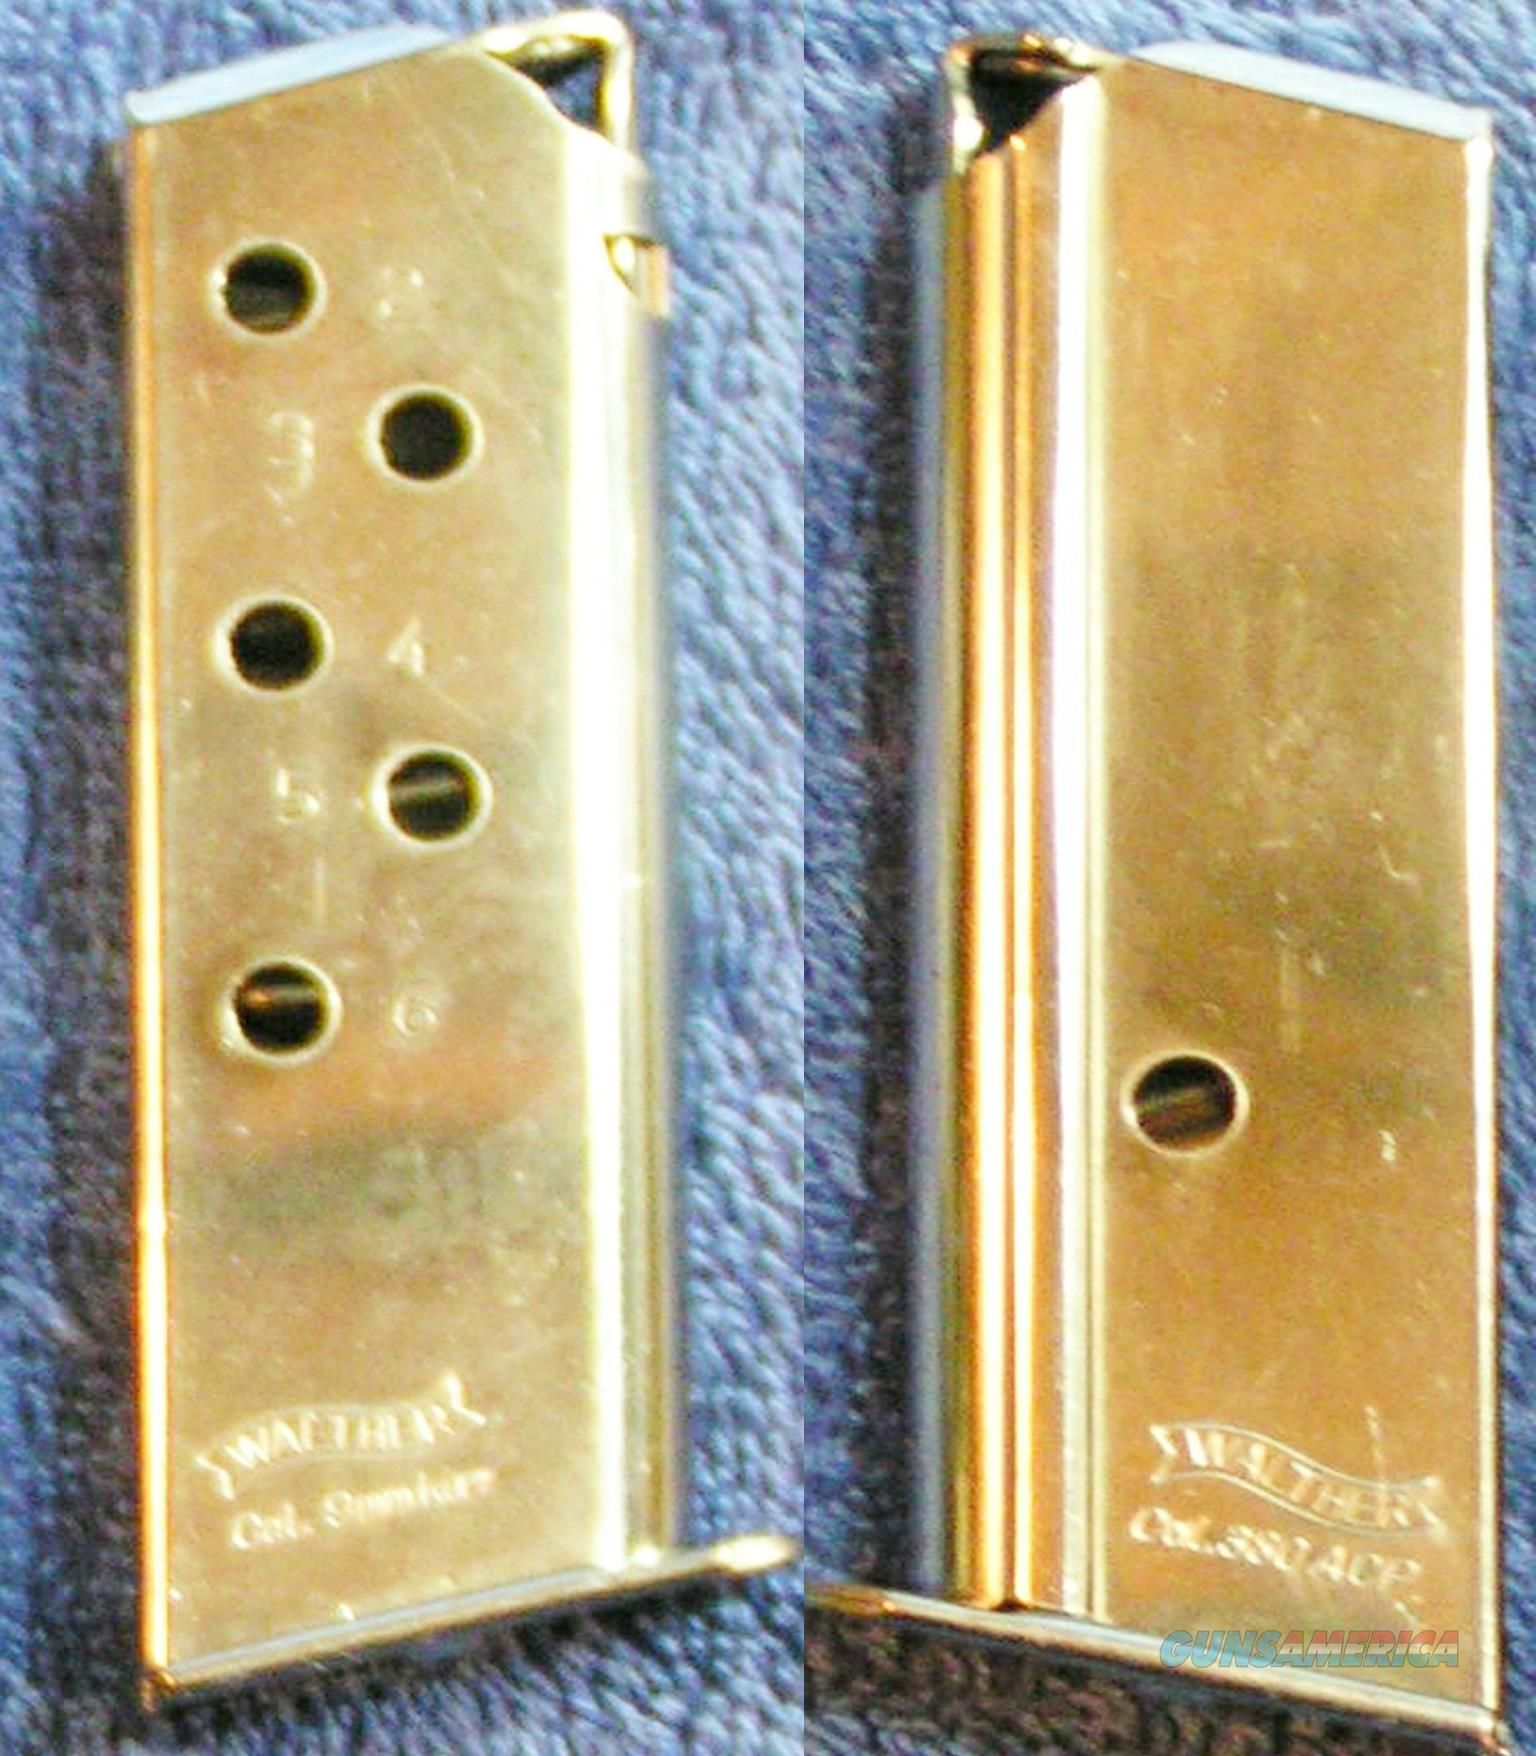 2 Walther PPK 380 mags 6 round Nickel plated .380  Non-Guns > Magazines & Clips